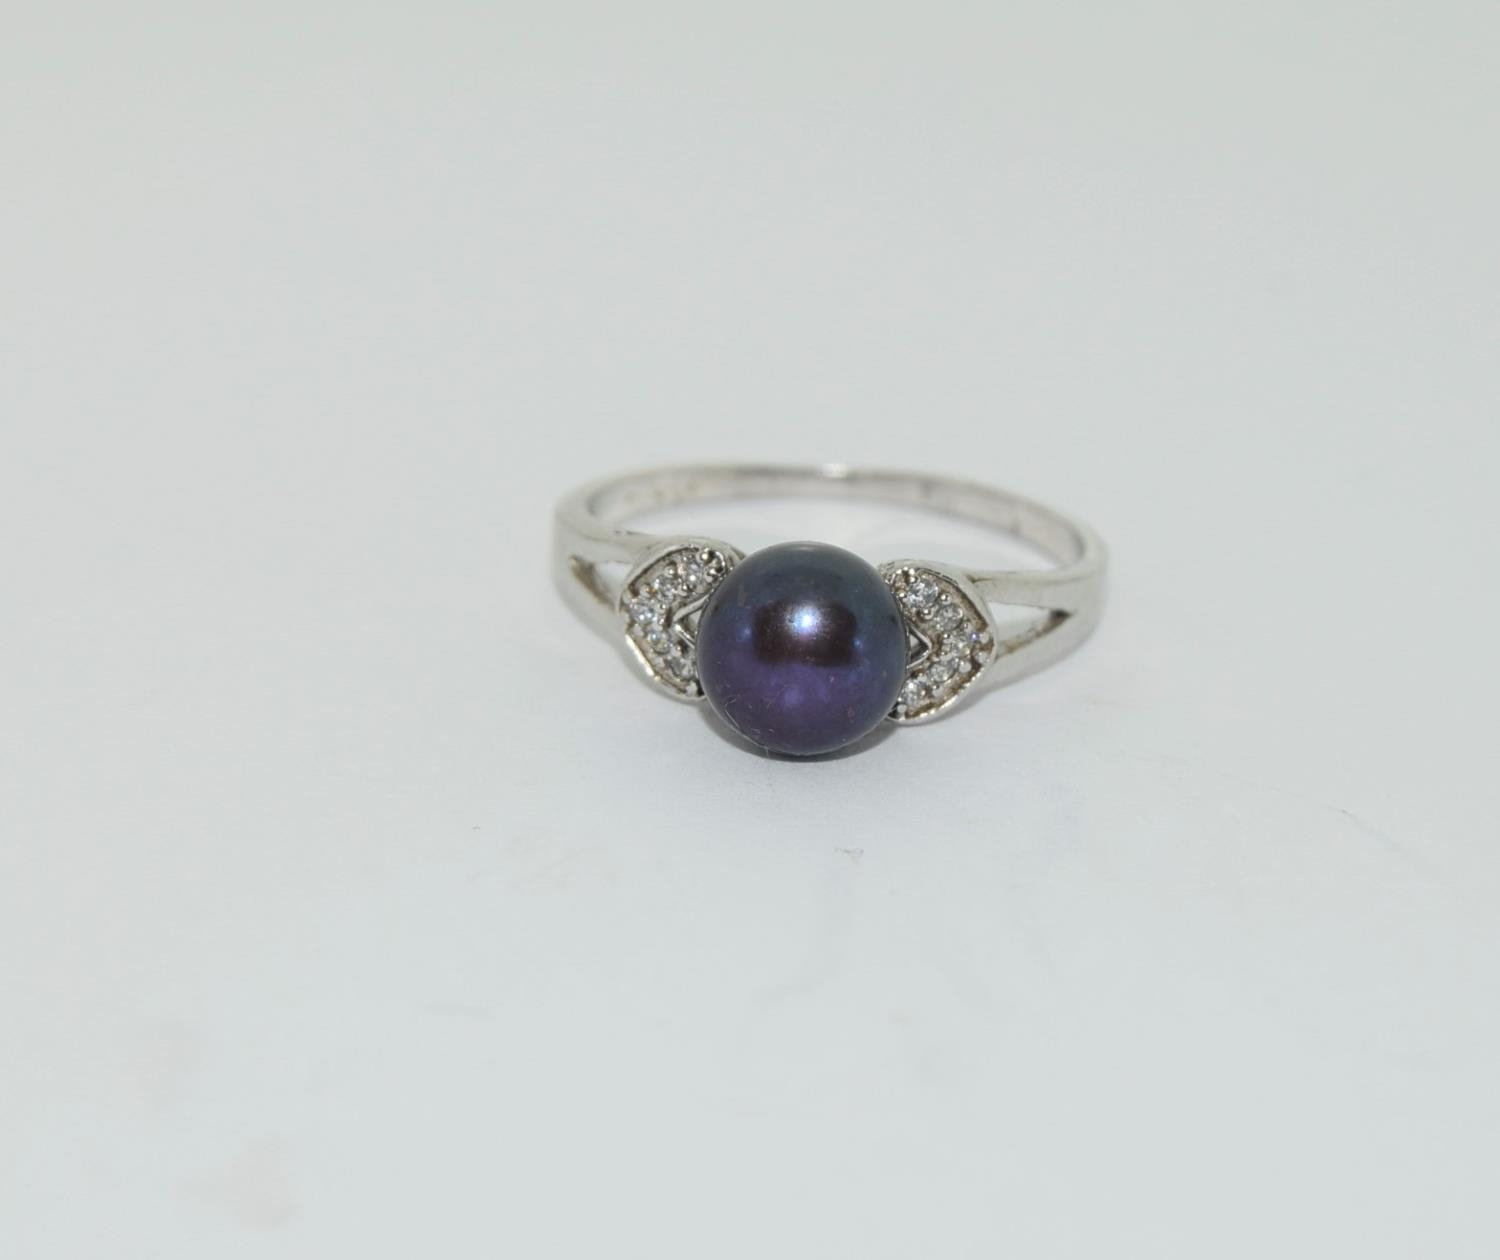 Silver ladies ring set with round pearl mount. Size O.